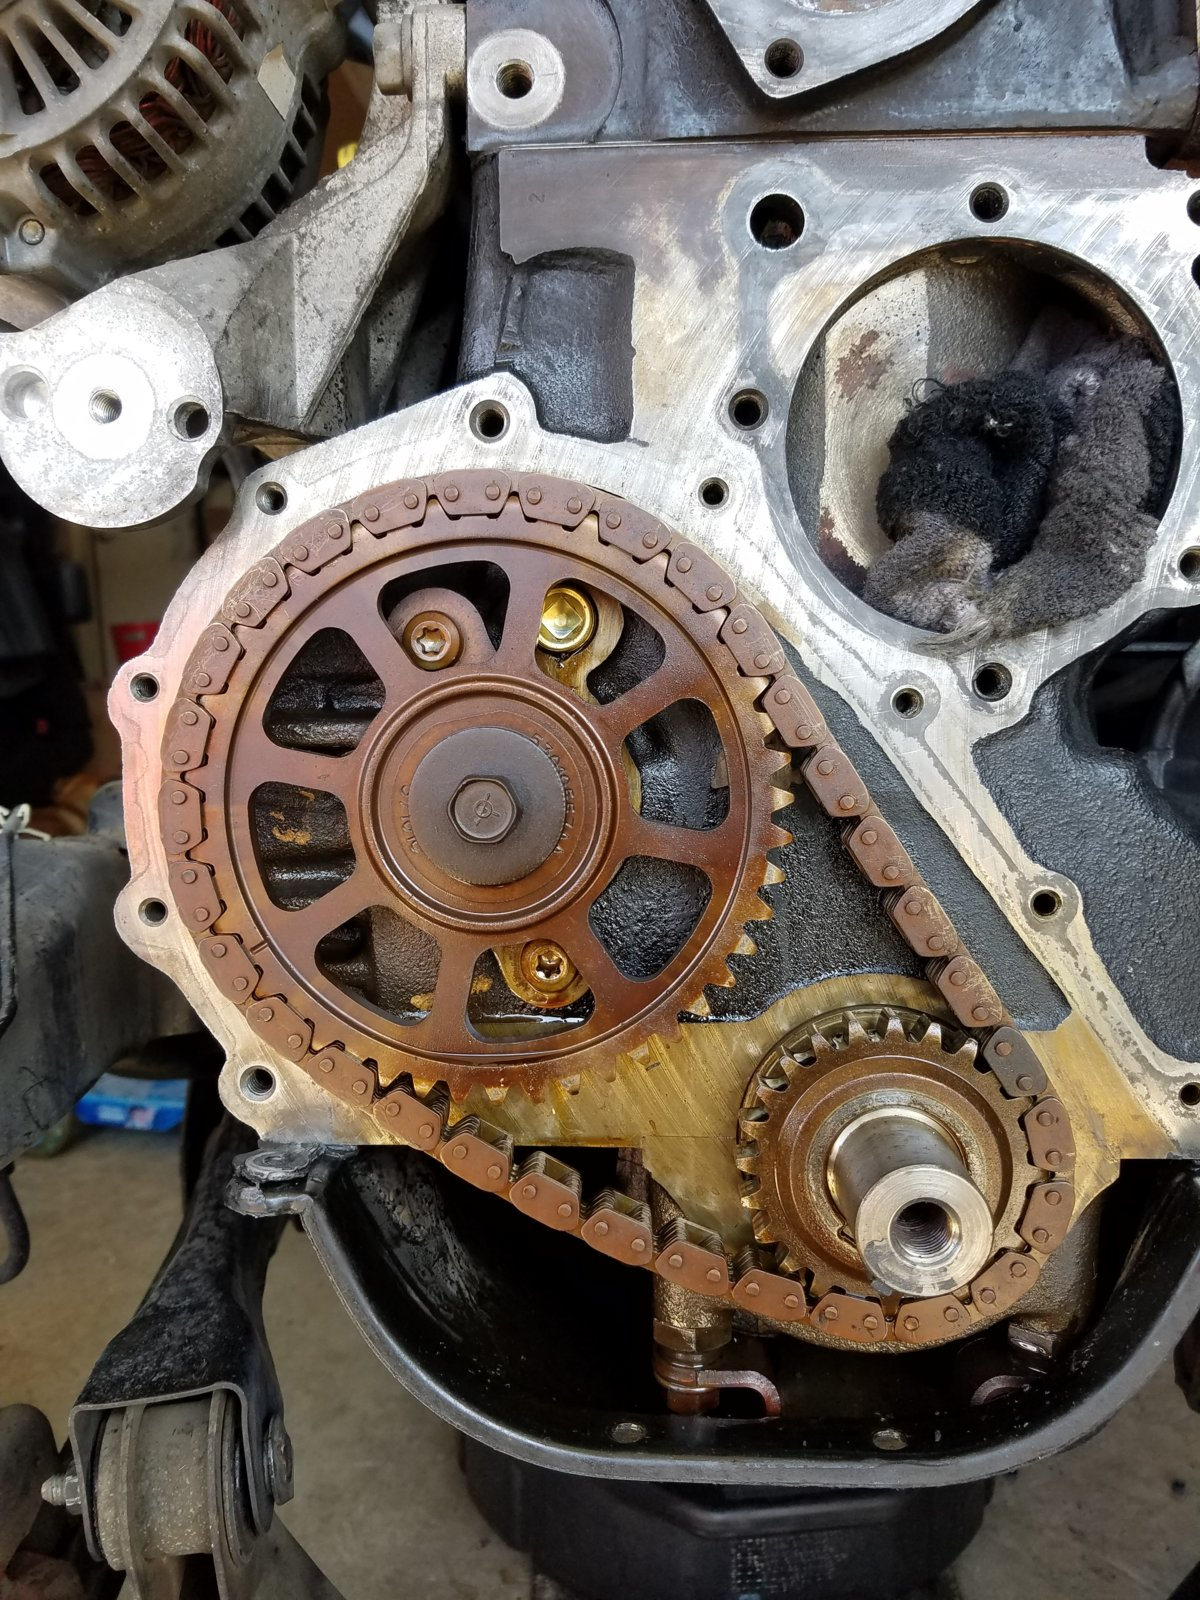 What does it typically cost to replace a timing chain